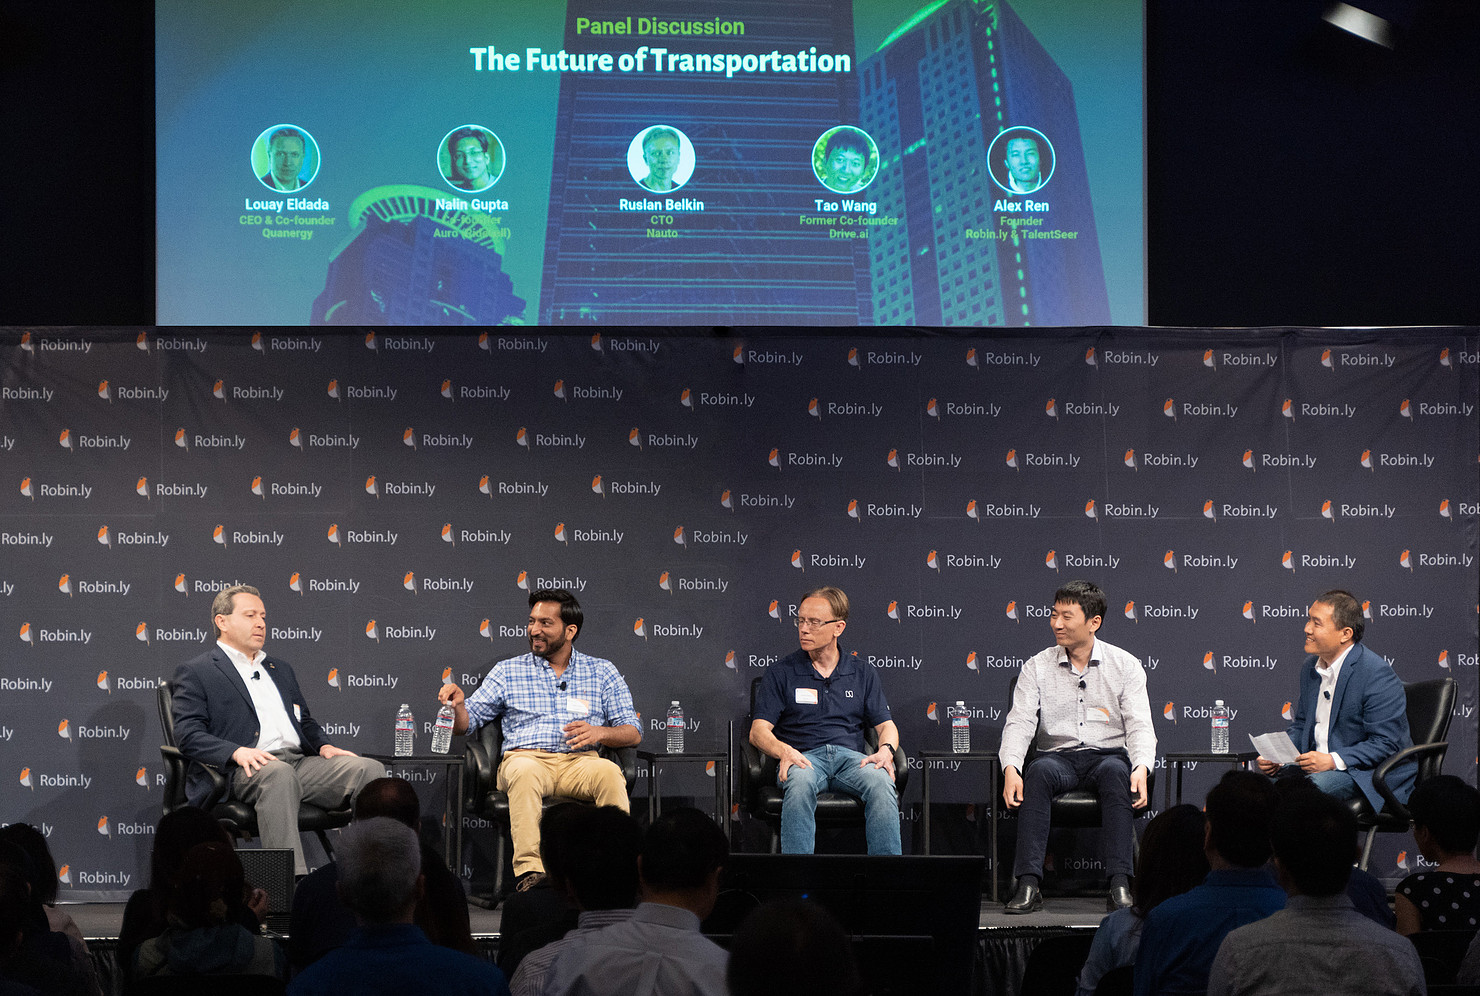 Panel Discussion on The Future of Transportation, Robin.ly AI Commercialization 2019 (Panelist from left to right: Louay Eldada, CEO & Co-Founder @ Quanergy; Nalin Gupta, Co-founder of Autonomous Driving Division (Auro) @ Ridecell; Ruslan Belkin, CTO @ NAUTO; Tao Wang, Former Co-founder @ Drive.ai; Alex Ren, Founder @ Robin.ly & TalentSeer)